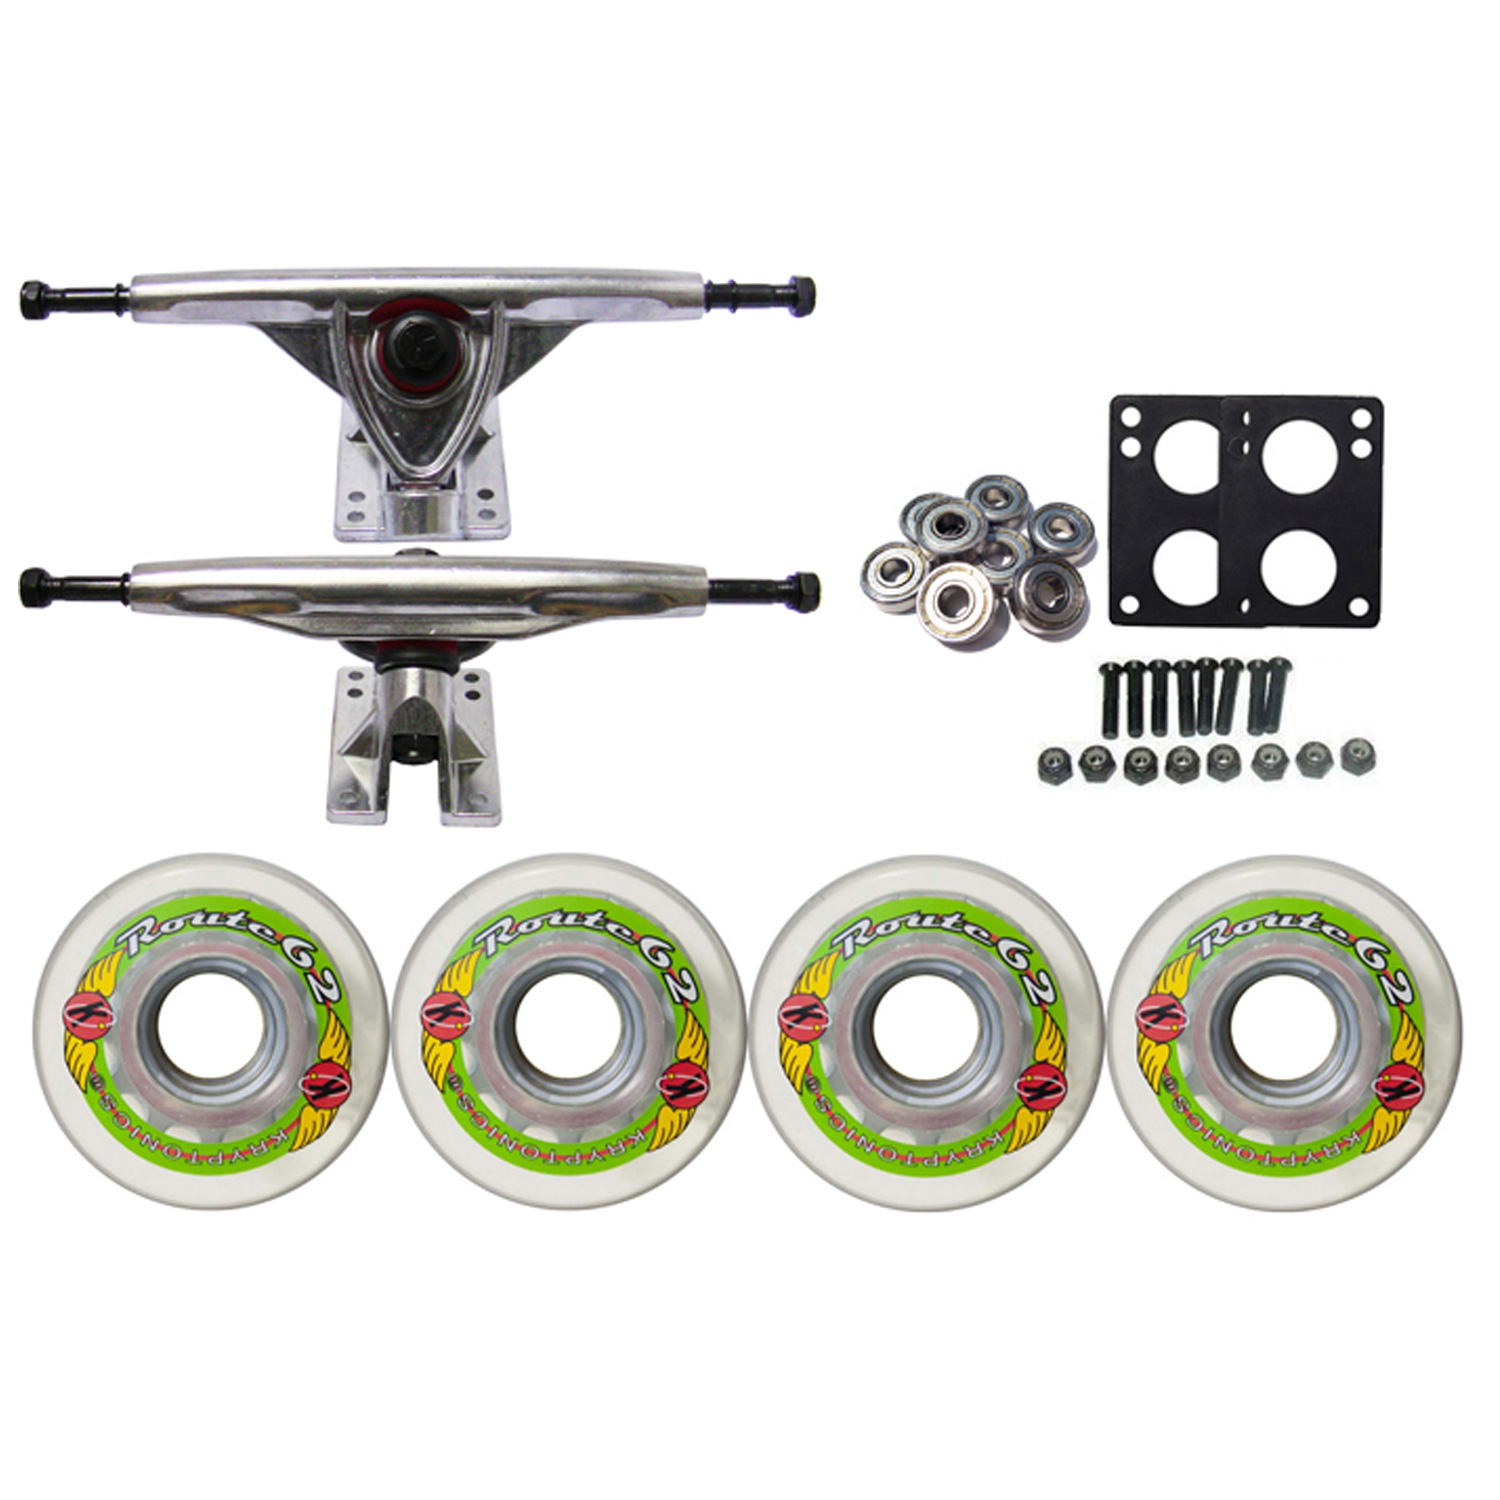 KRYPTONICS ROUTE Truck Wheel Pack 62mm CLEAR 180mm Raw